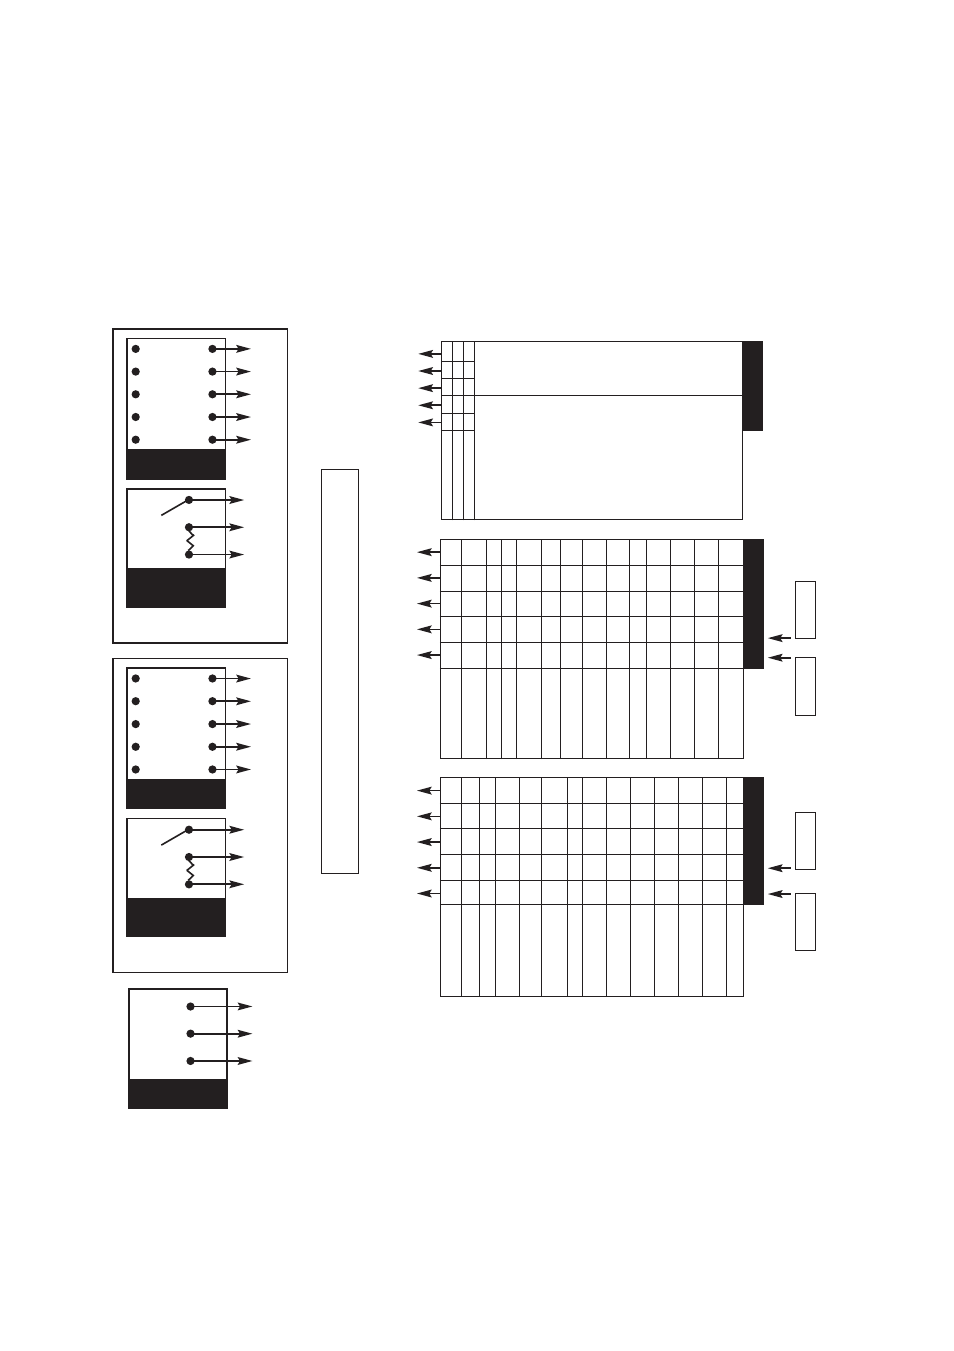 miscellaneous  1 wiring diagram for two heating zones  pr ogrammer